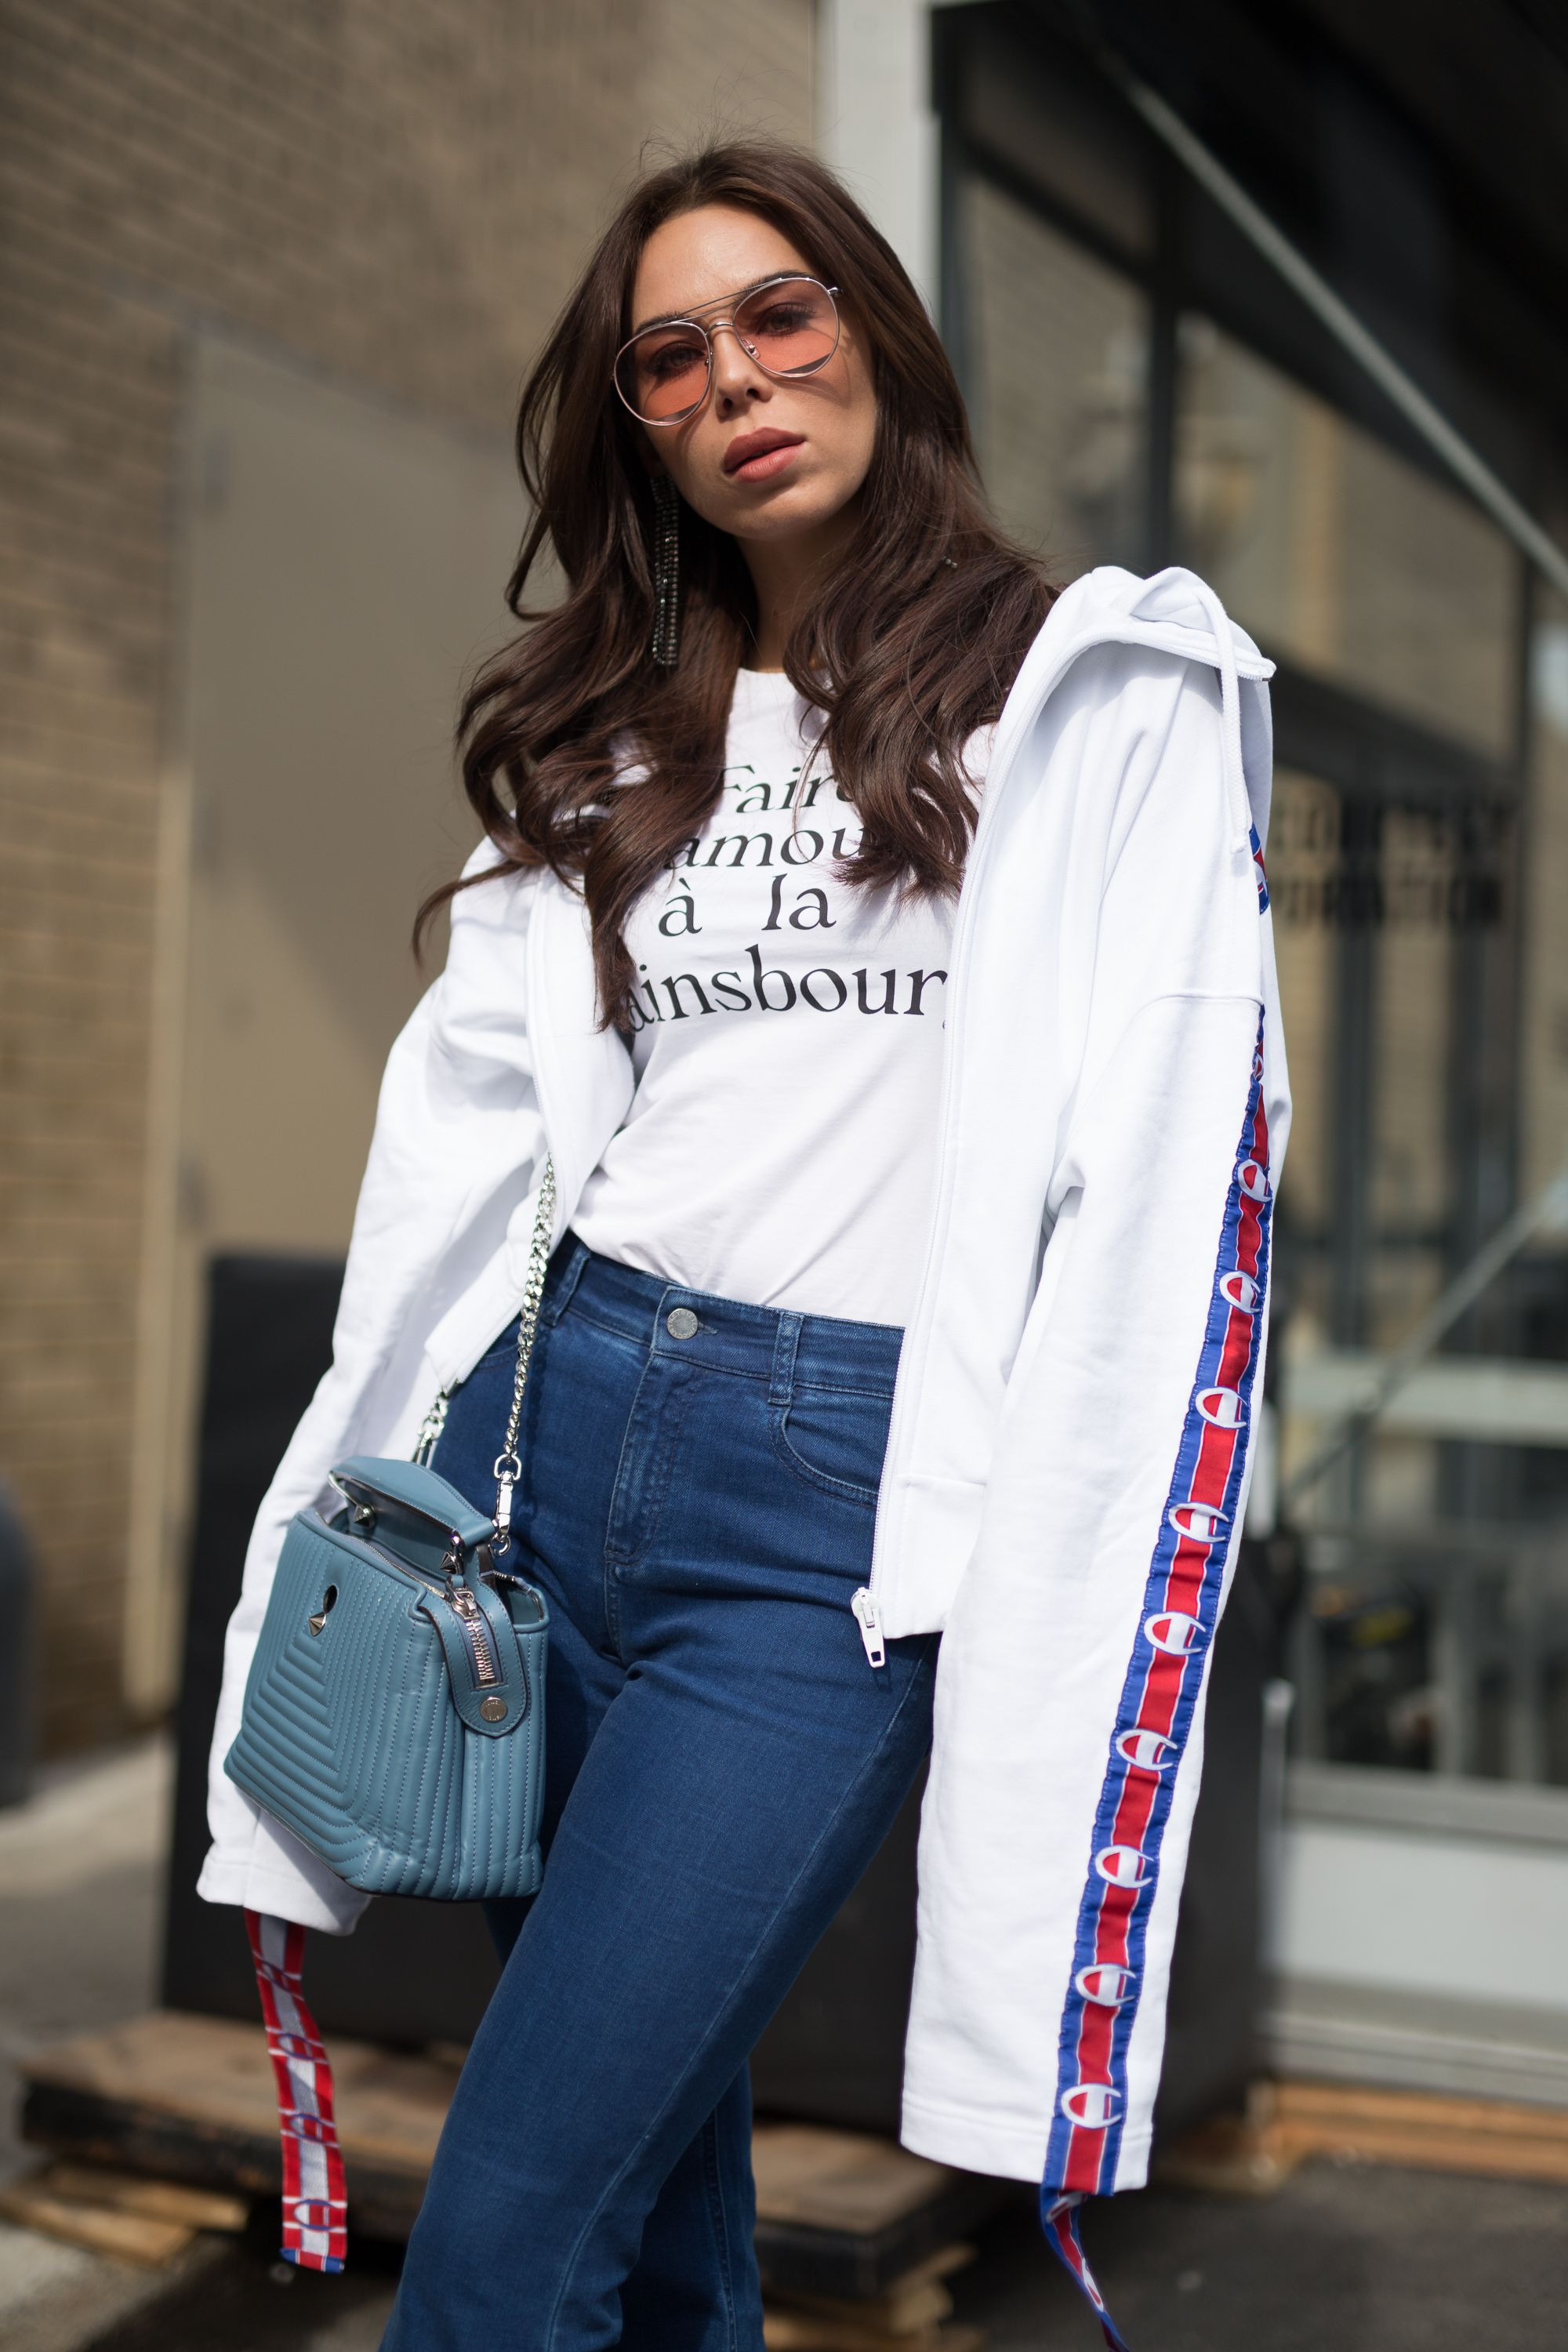 Come indossare T shirt bianca e jeans in 15 look